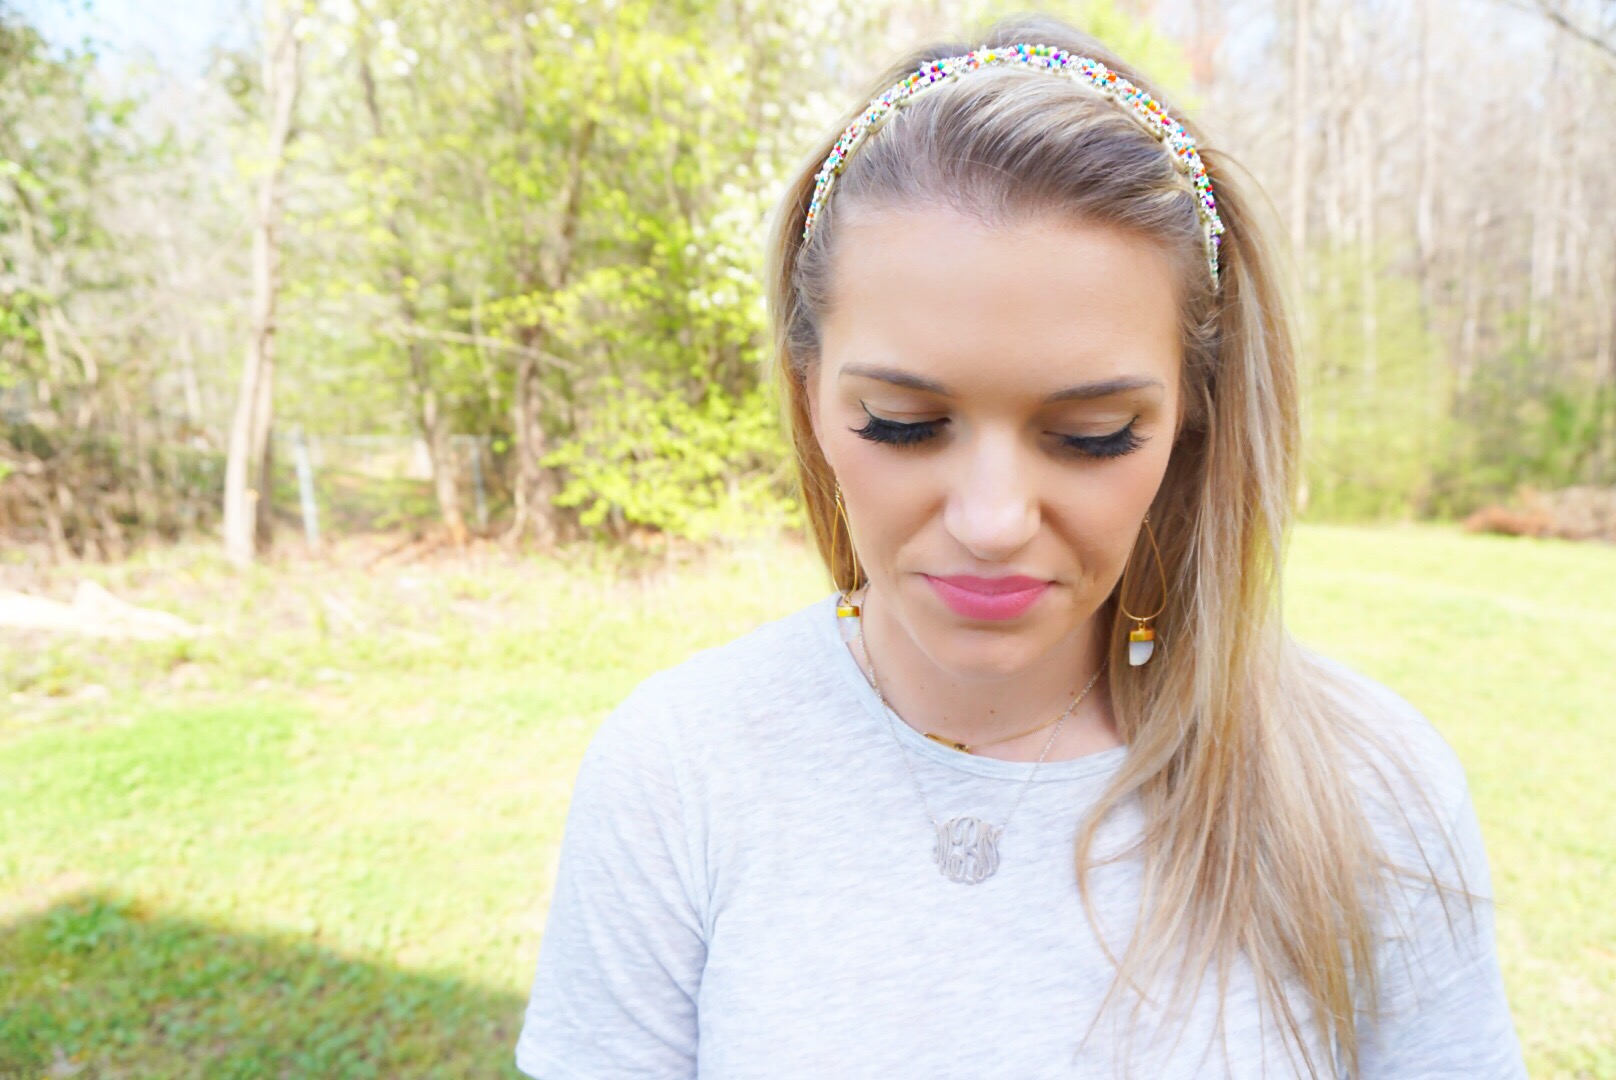 Headbands of Hope Confetti + Spring Neutrals with Pop of color